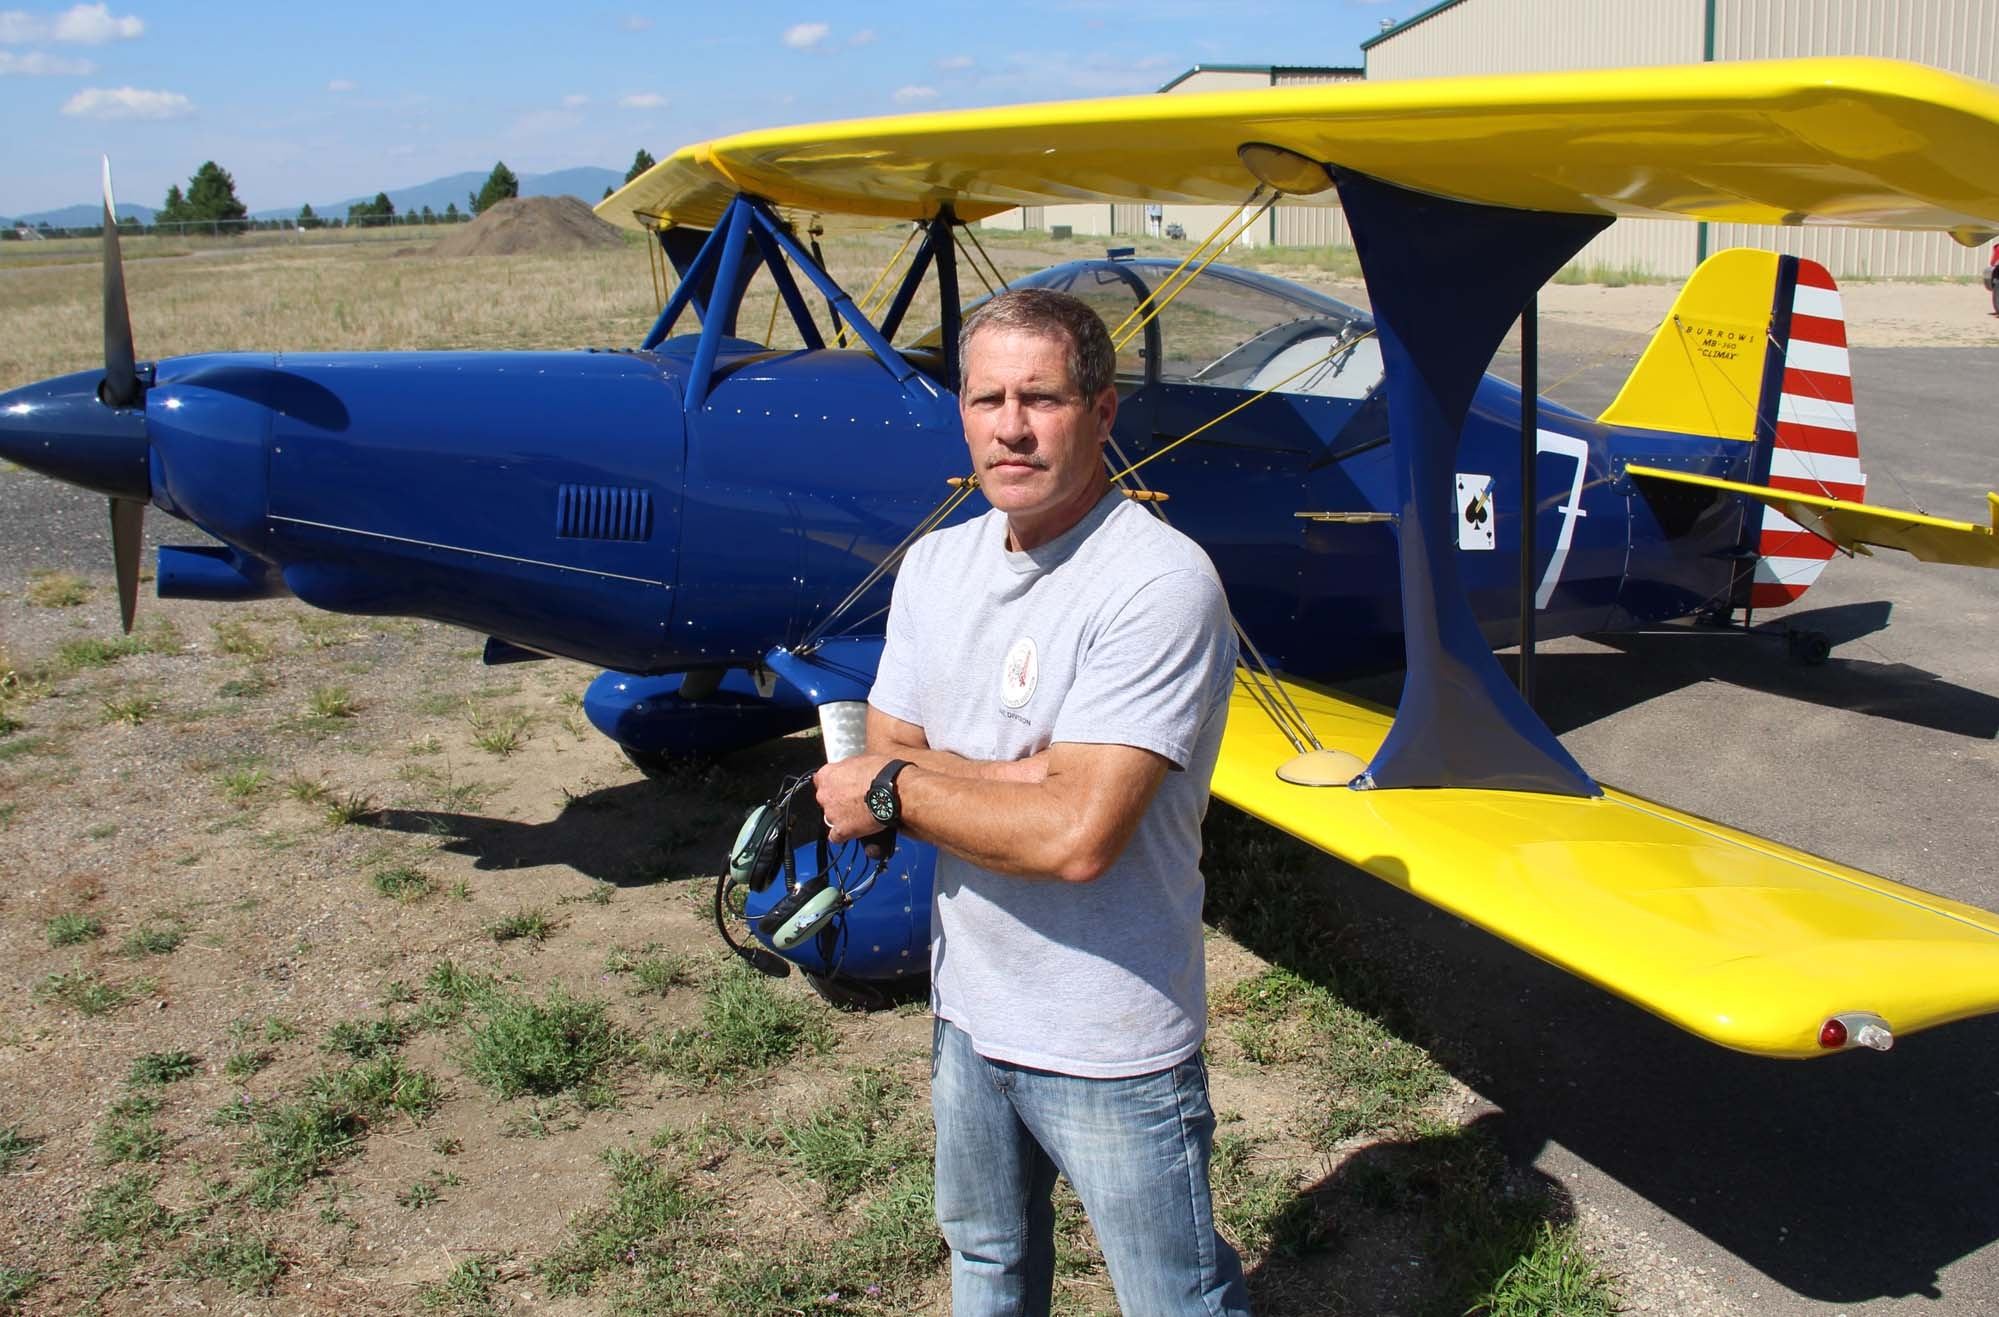 Deer Park Pilot Flies To National Championship Air Races